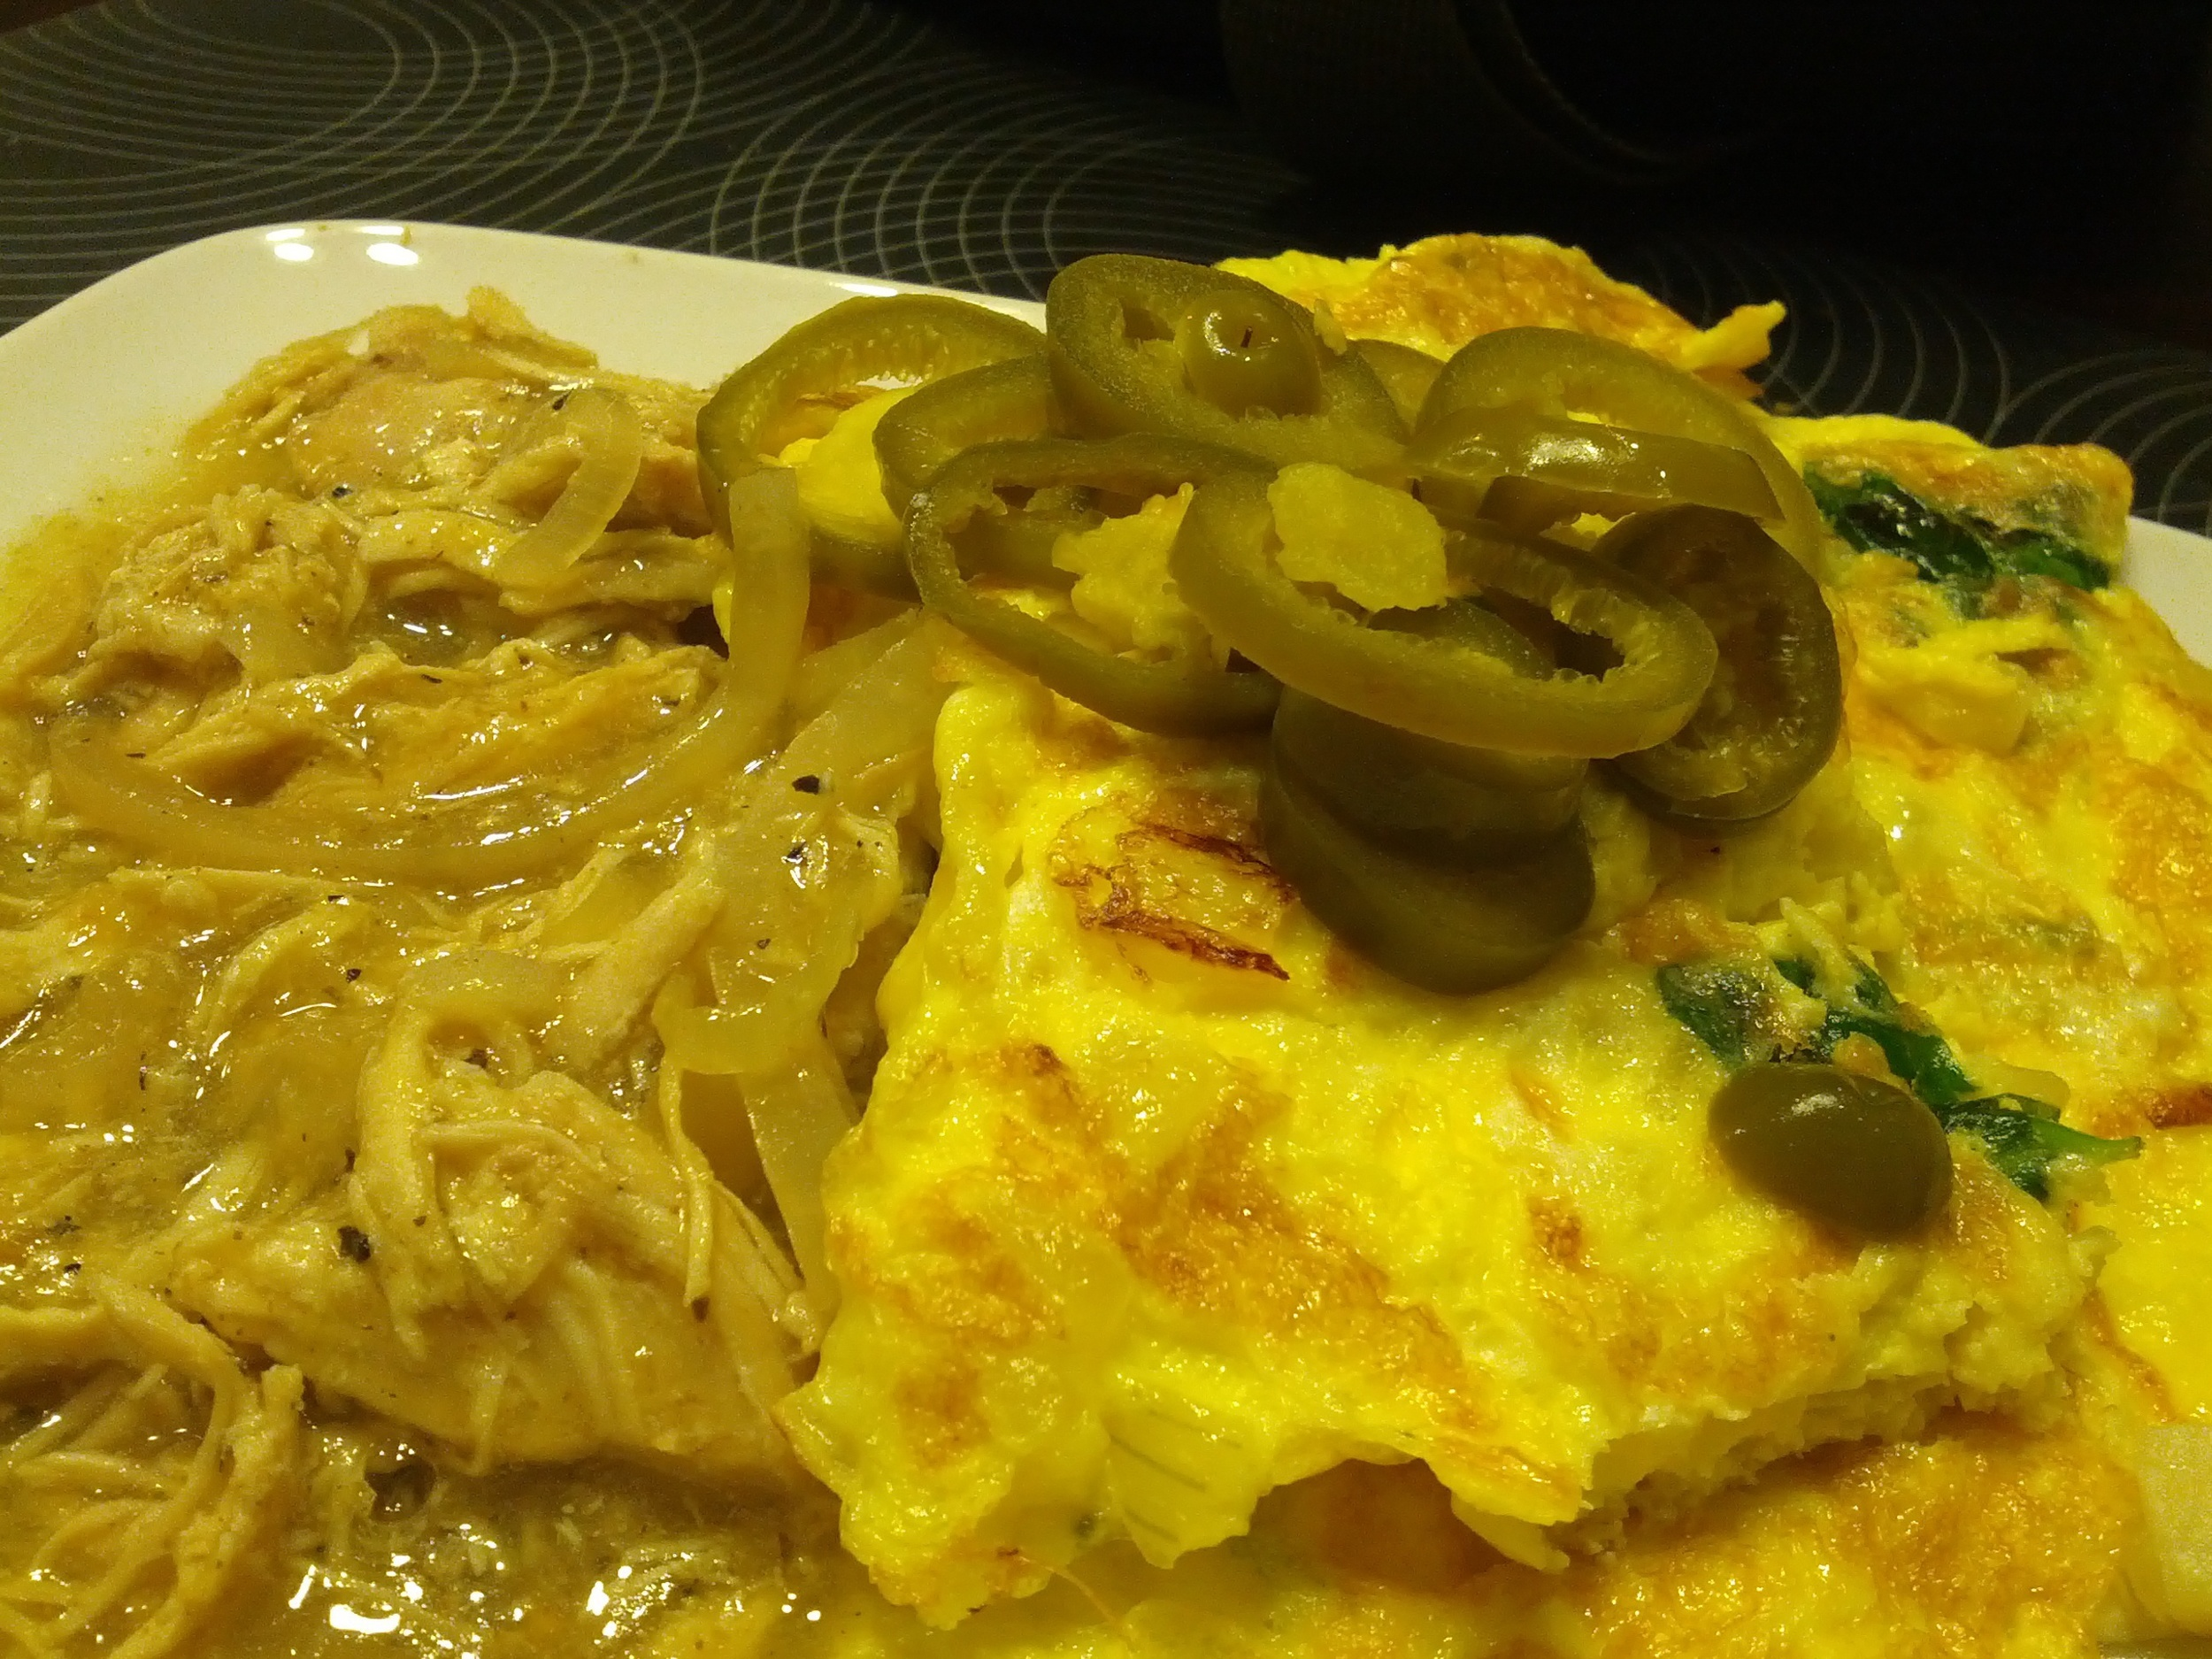 Tuesday morning breakfast, chicken chili con verde with scrambled eggs and jalapenos.